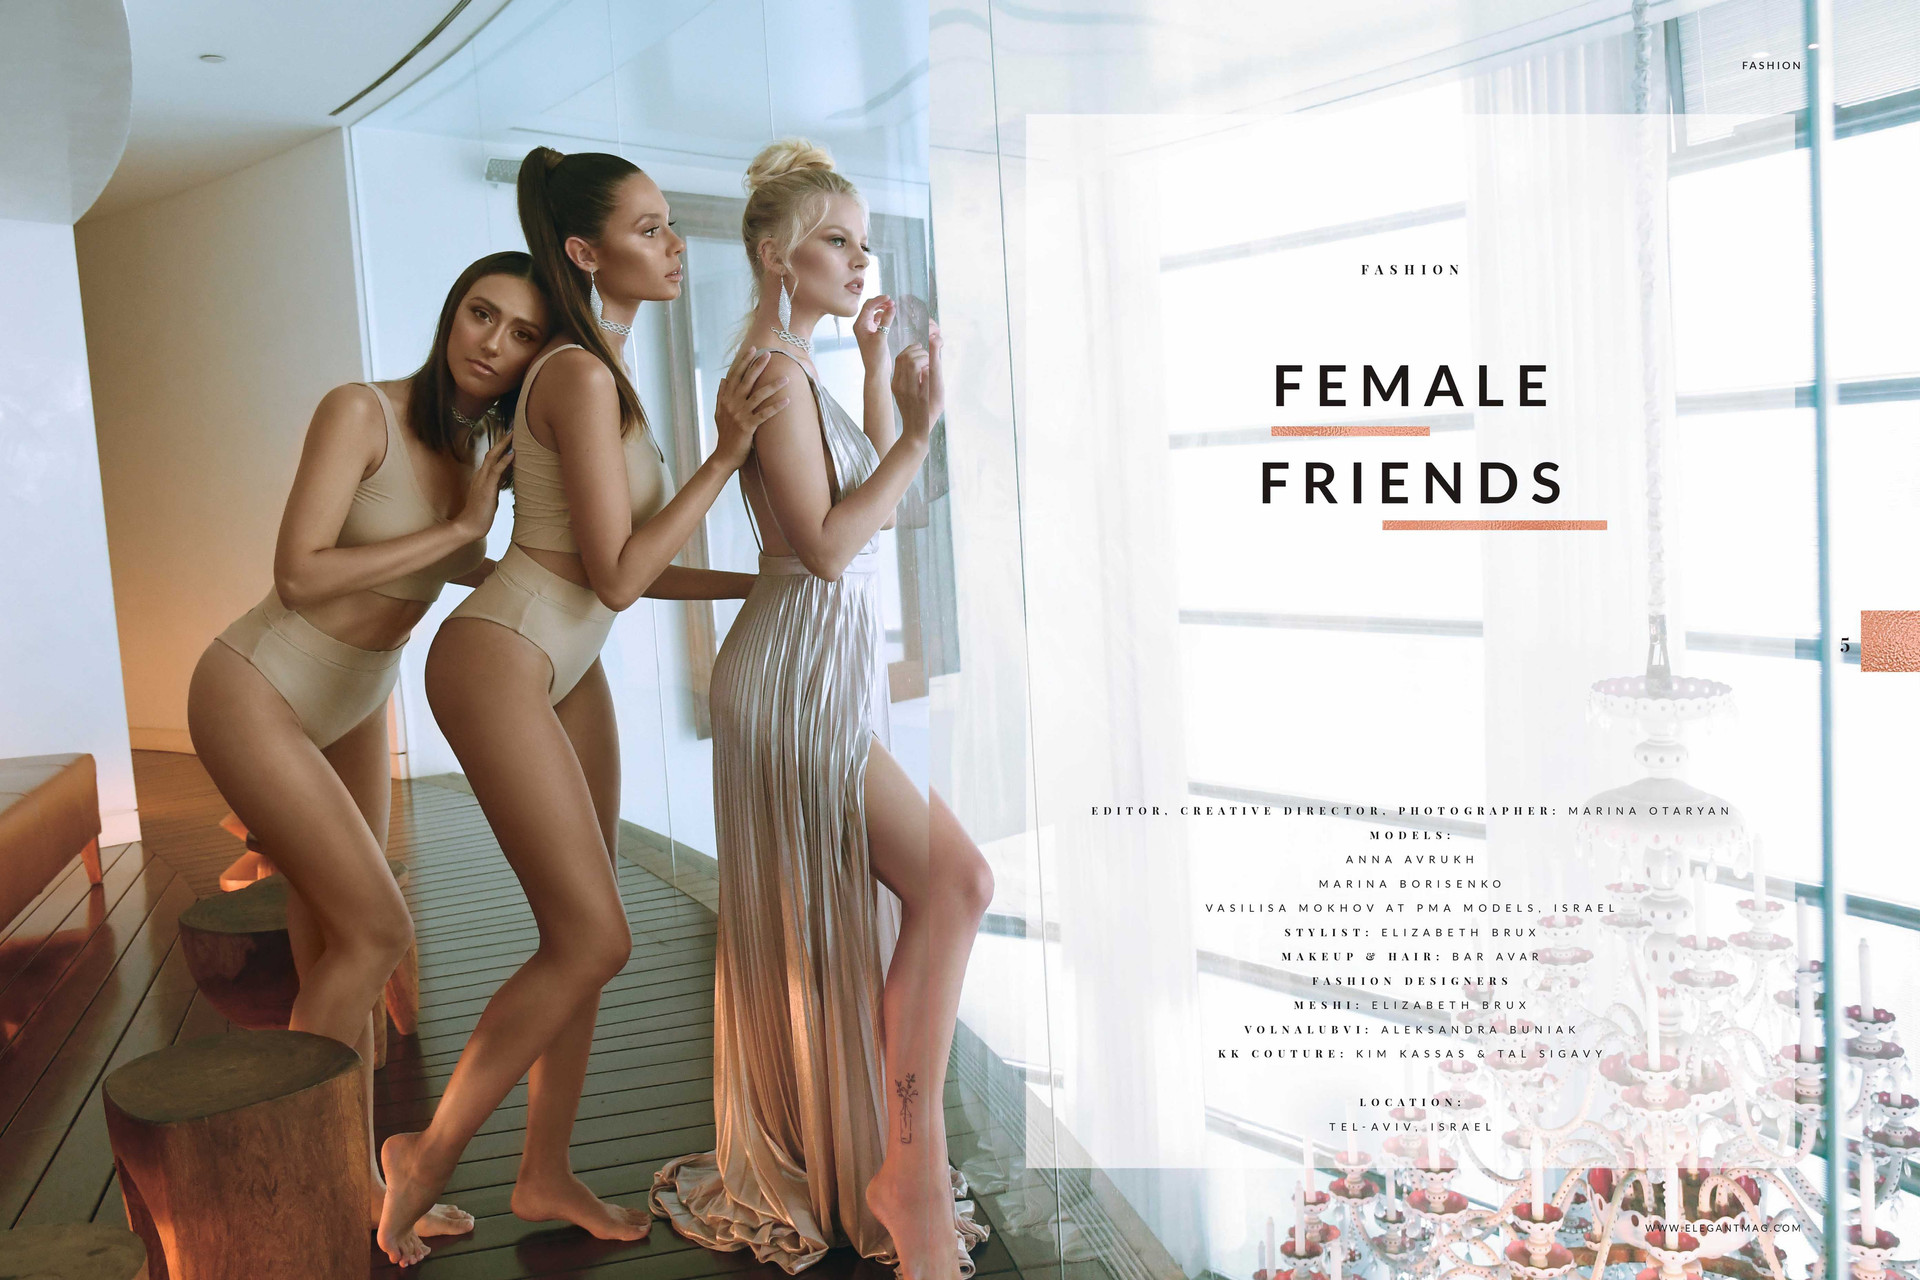 """Female Friendships"" for ELEGANT Magazine"